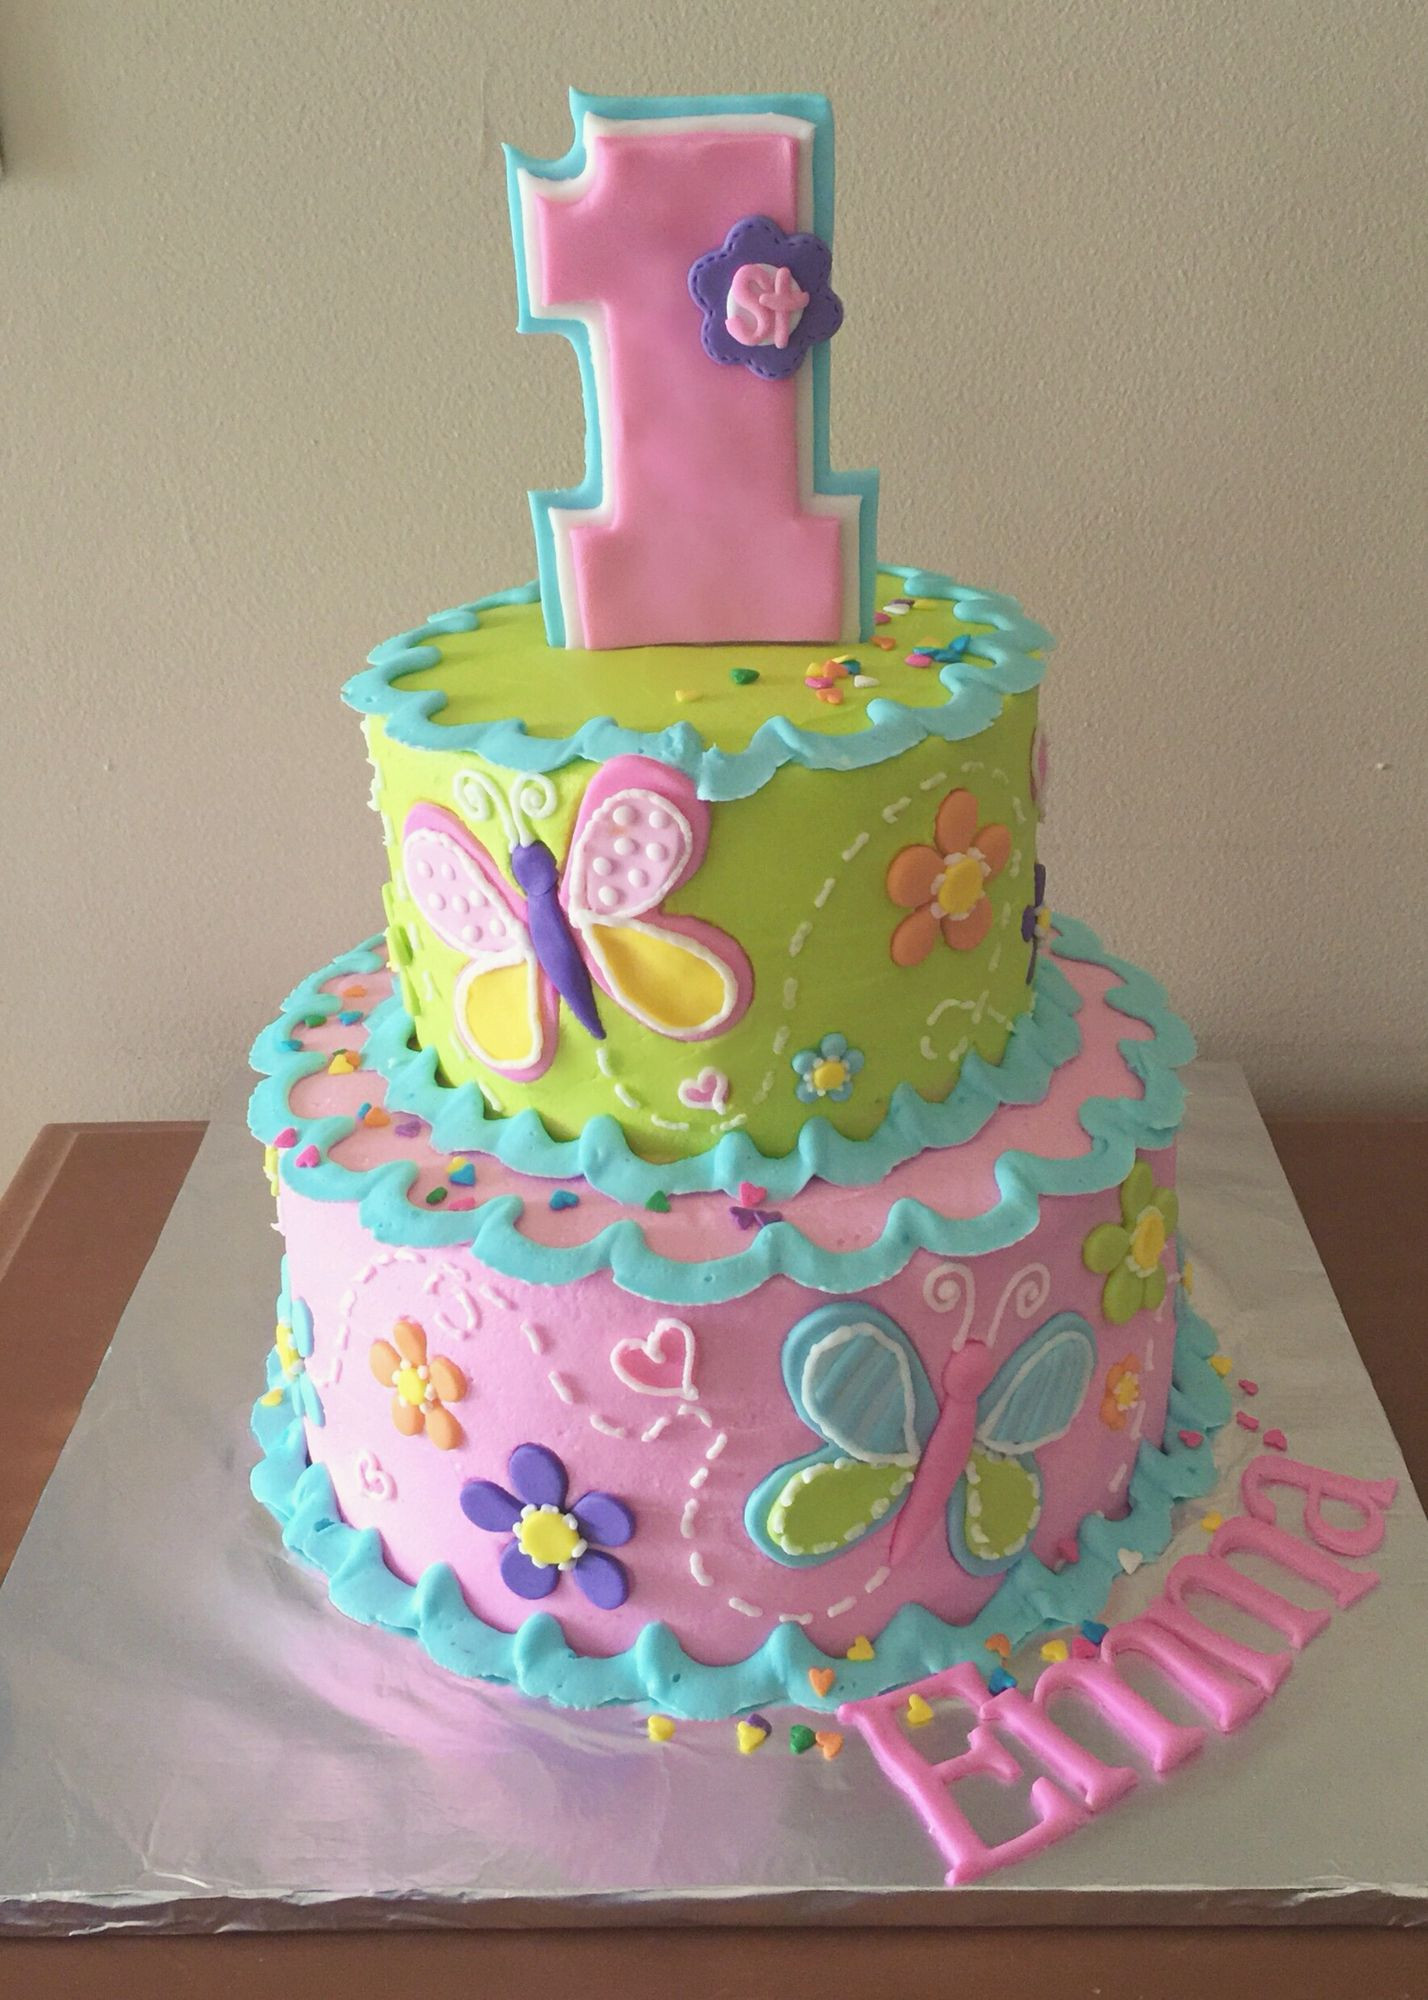 Best ideas about Birthday Cake Ideas For Girls . Save or Pin 1st birthday cake for a girl My Own Cakes Now.